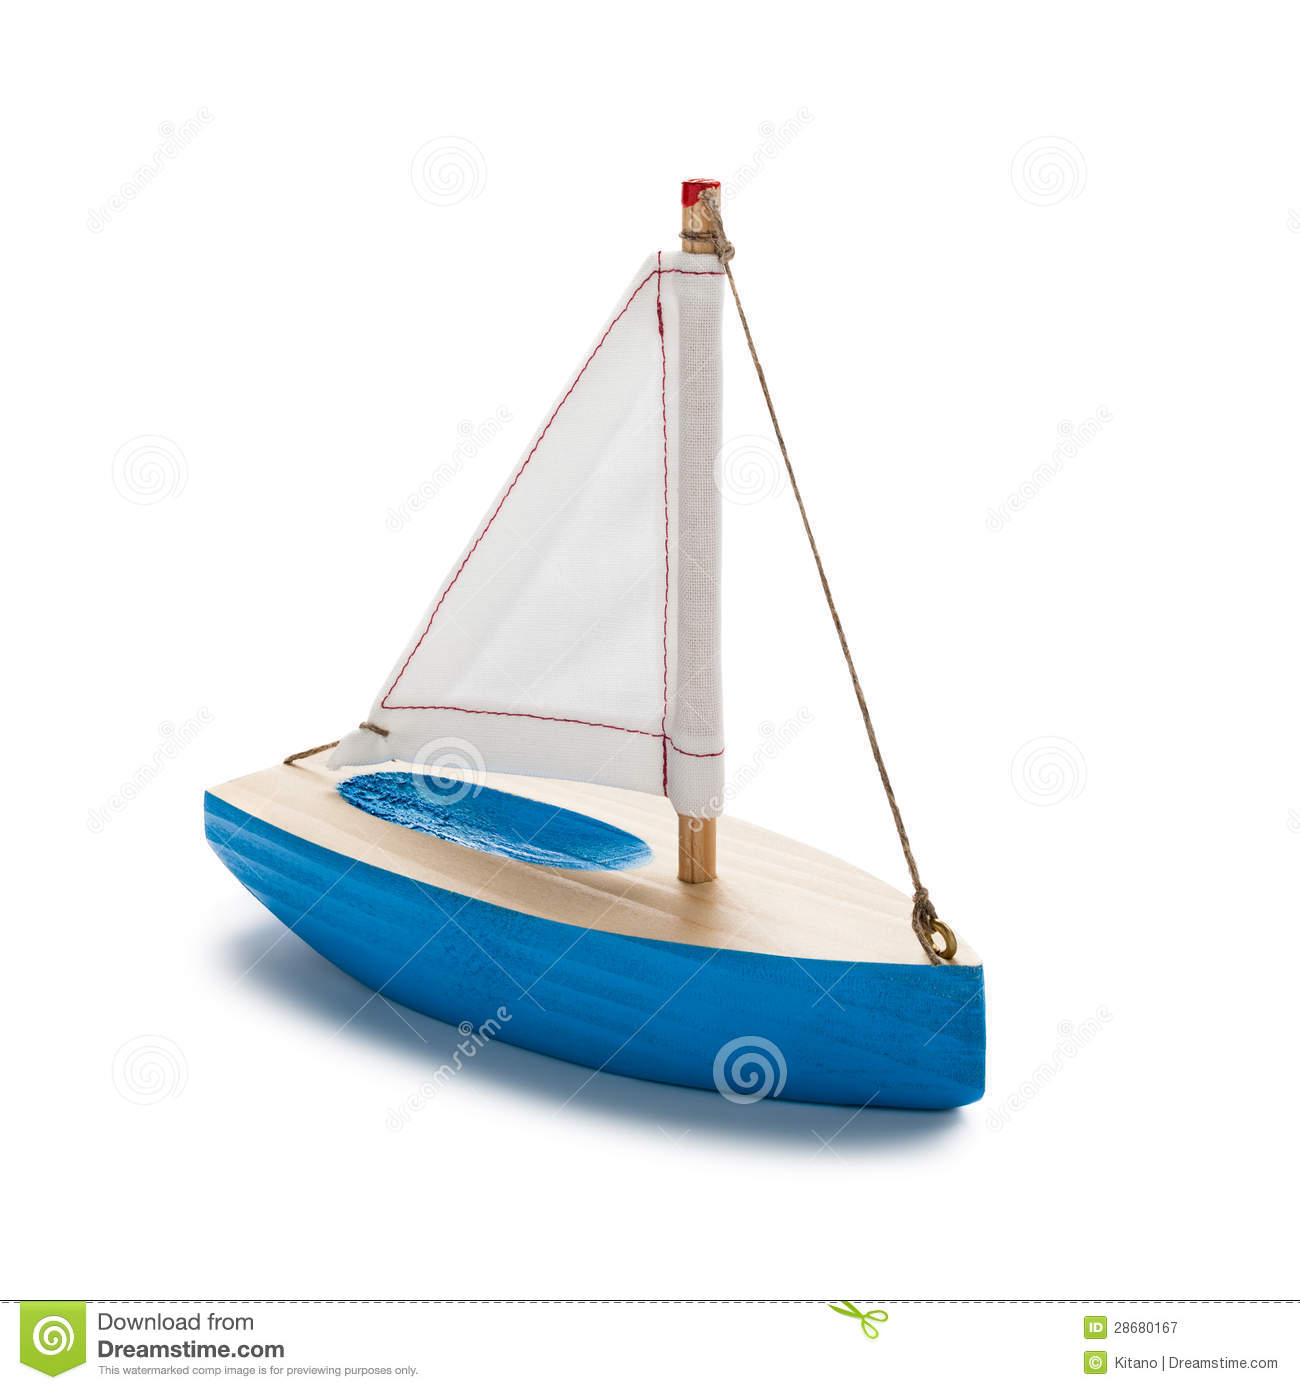 Little Toy Boat Royalty Free Stock Photography - Image: 28680167